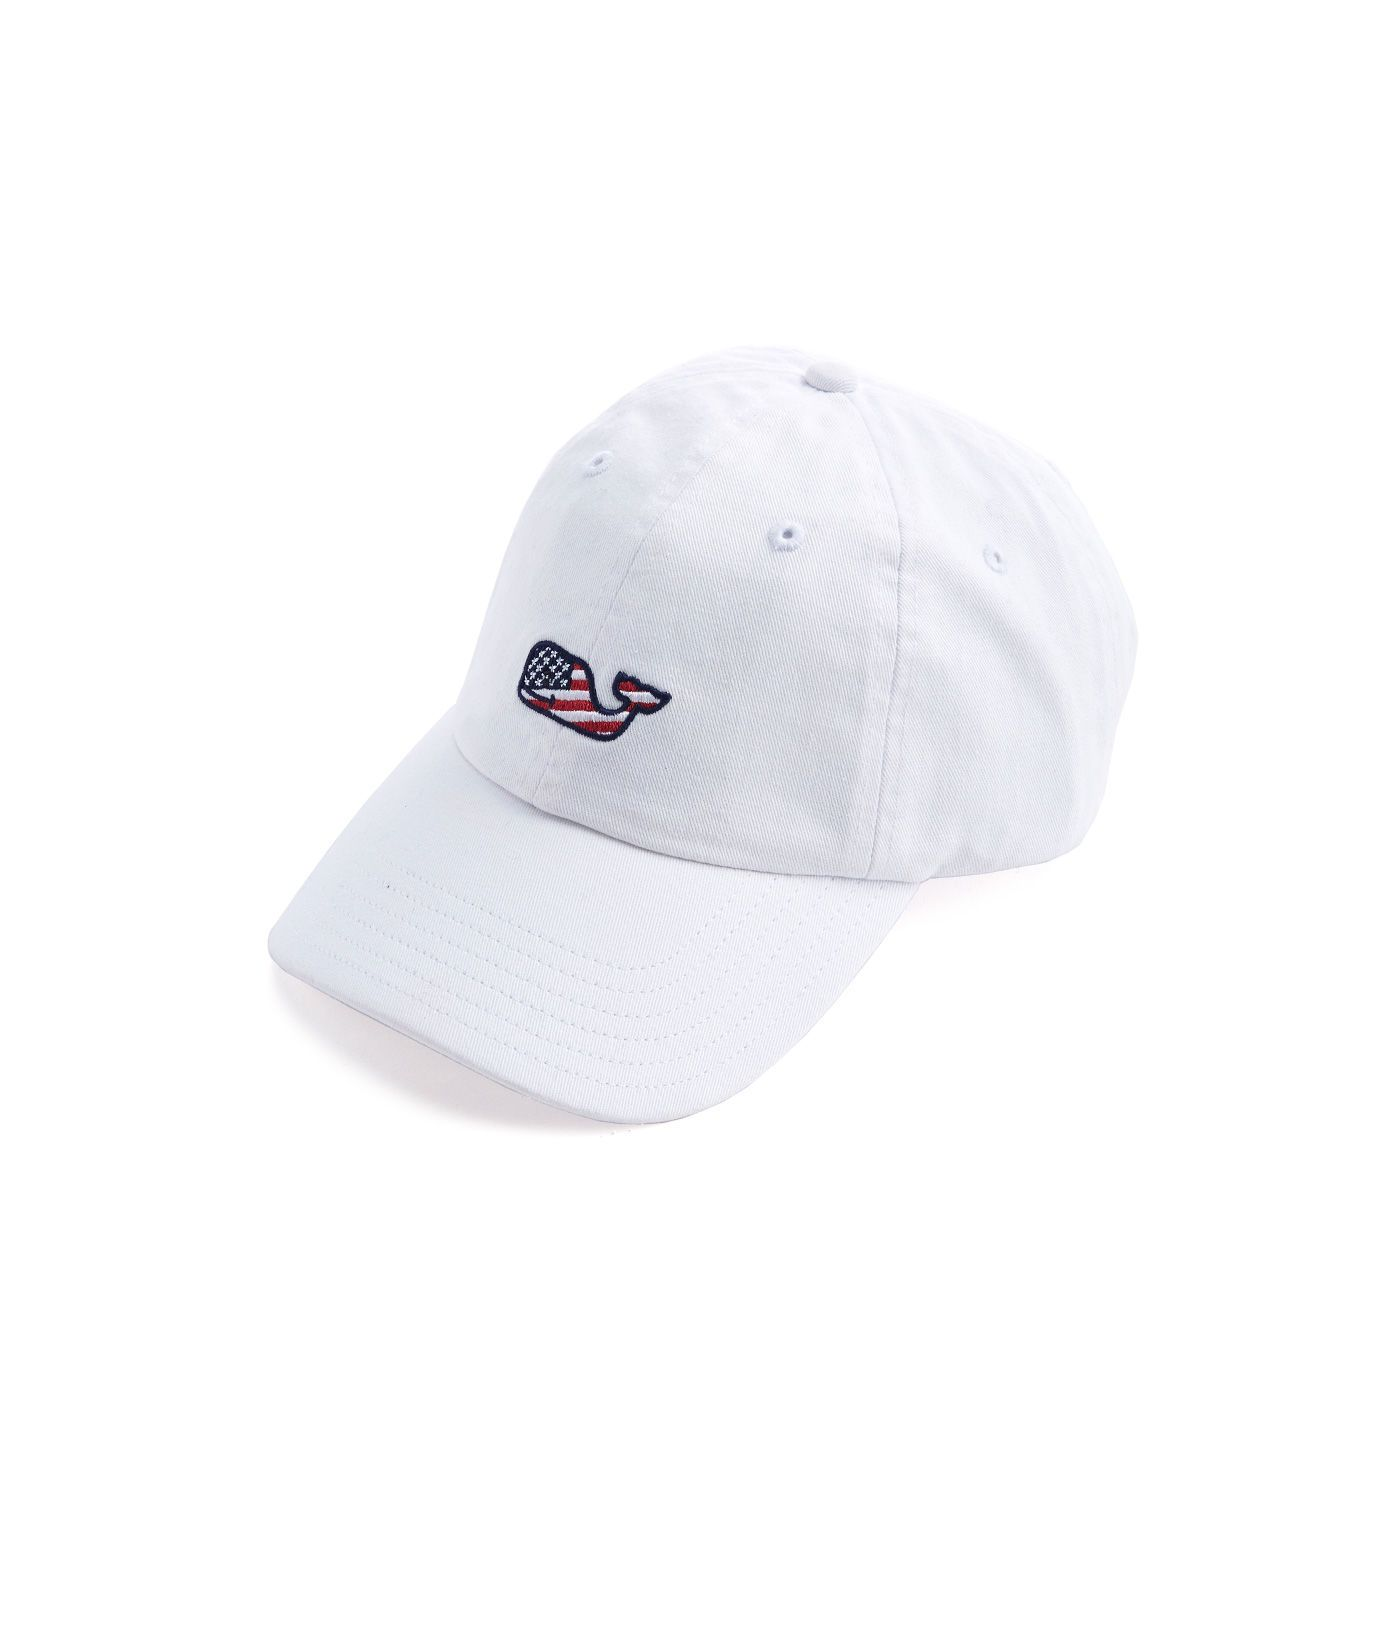 719b32b4b7e9 Shop Flag Whale Hat at vineyard vines | Accessories | Baseball hats ...